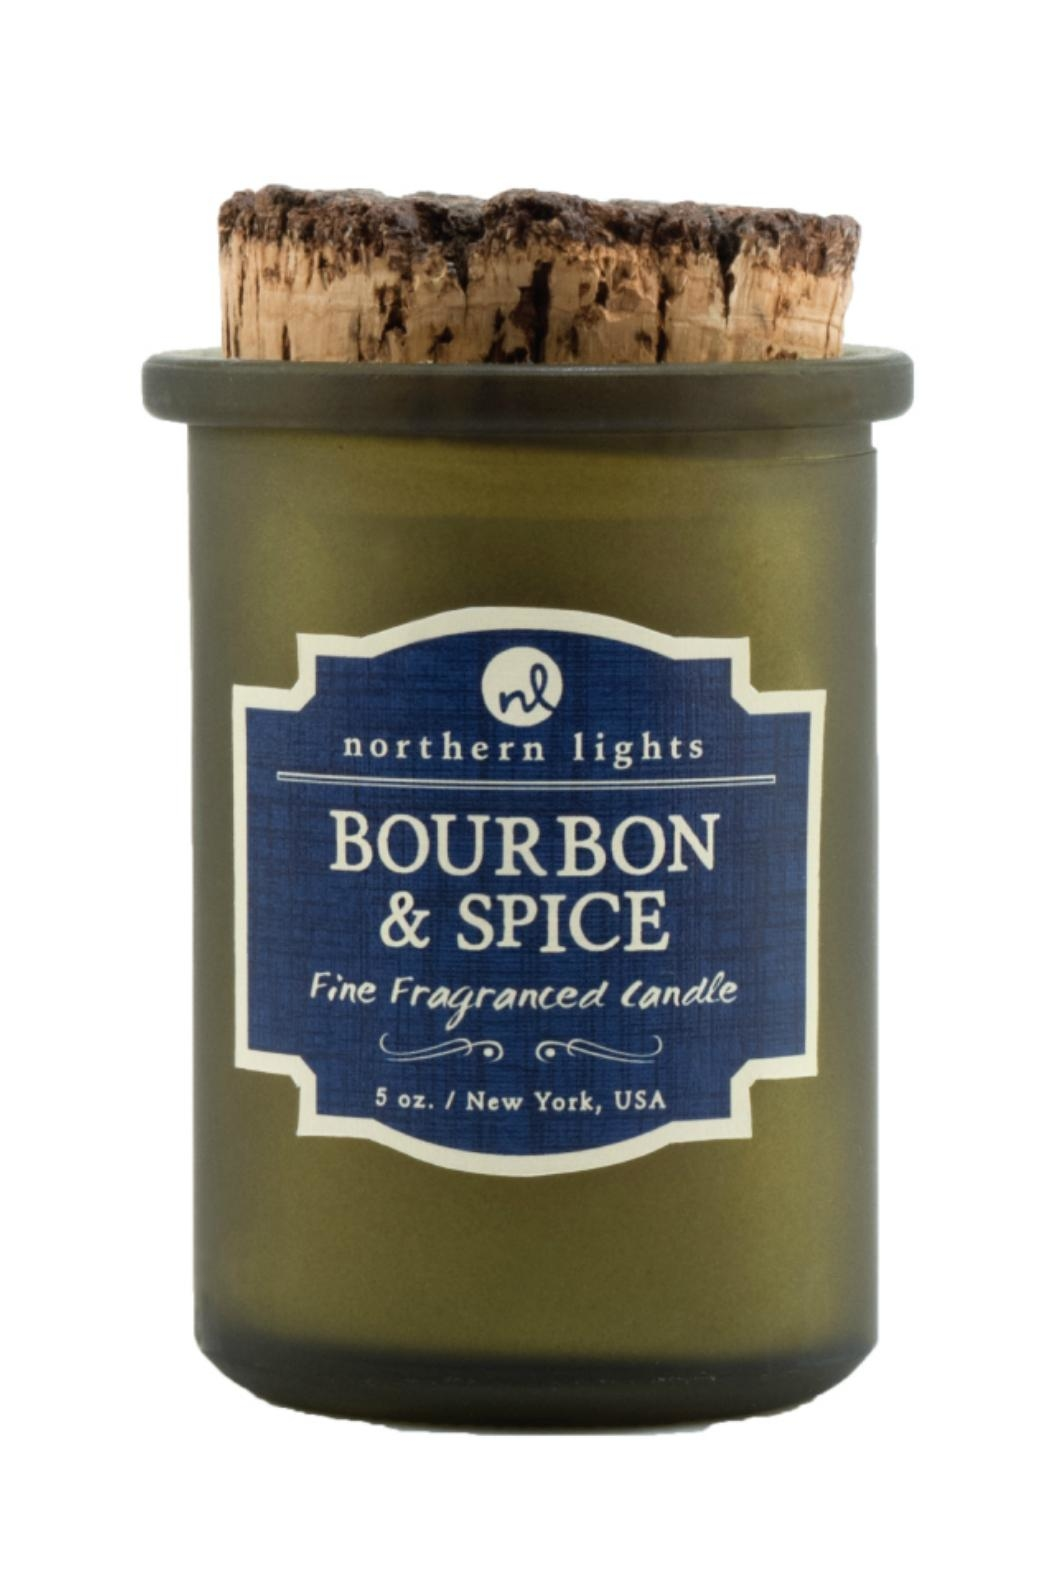 Northern Lights Bourbon & Spice Candle - Main Image